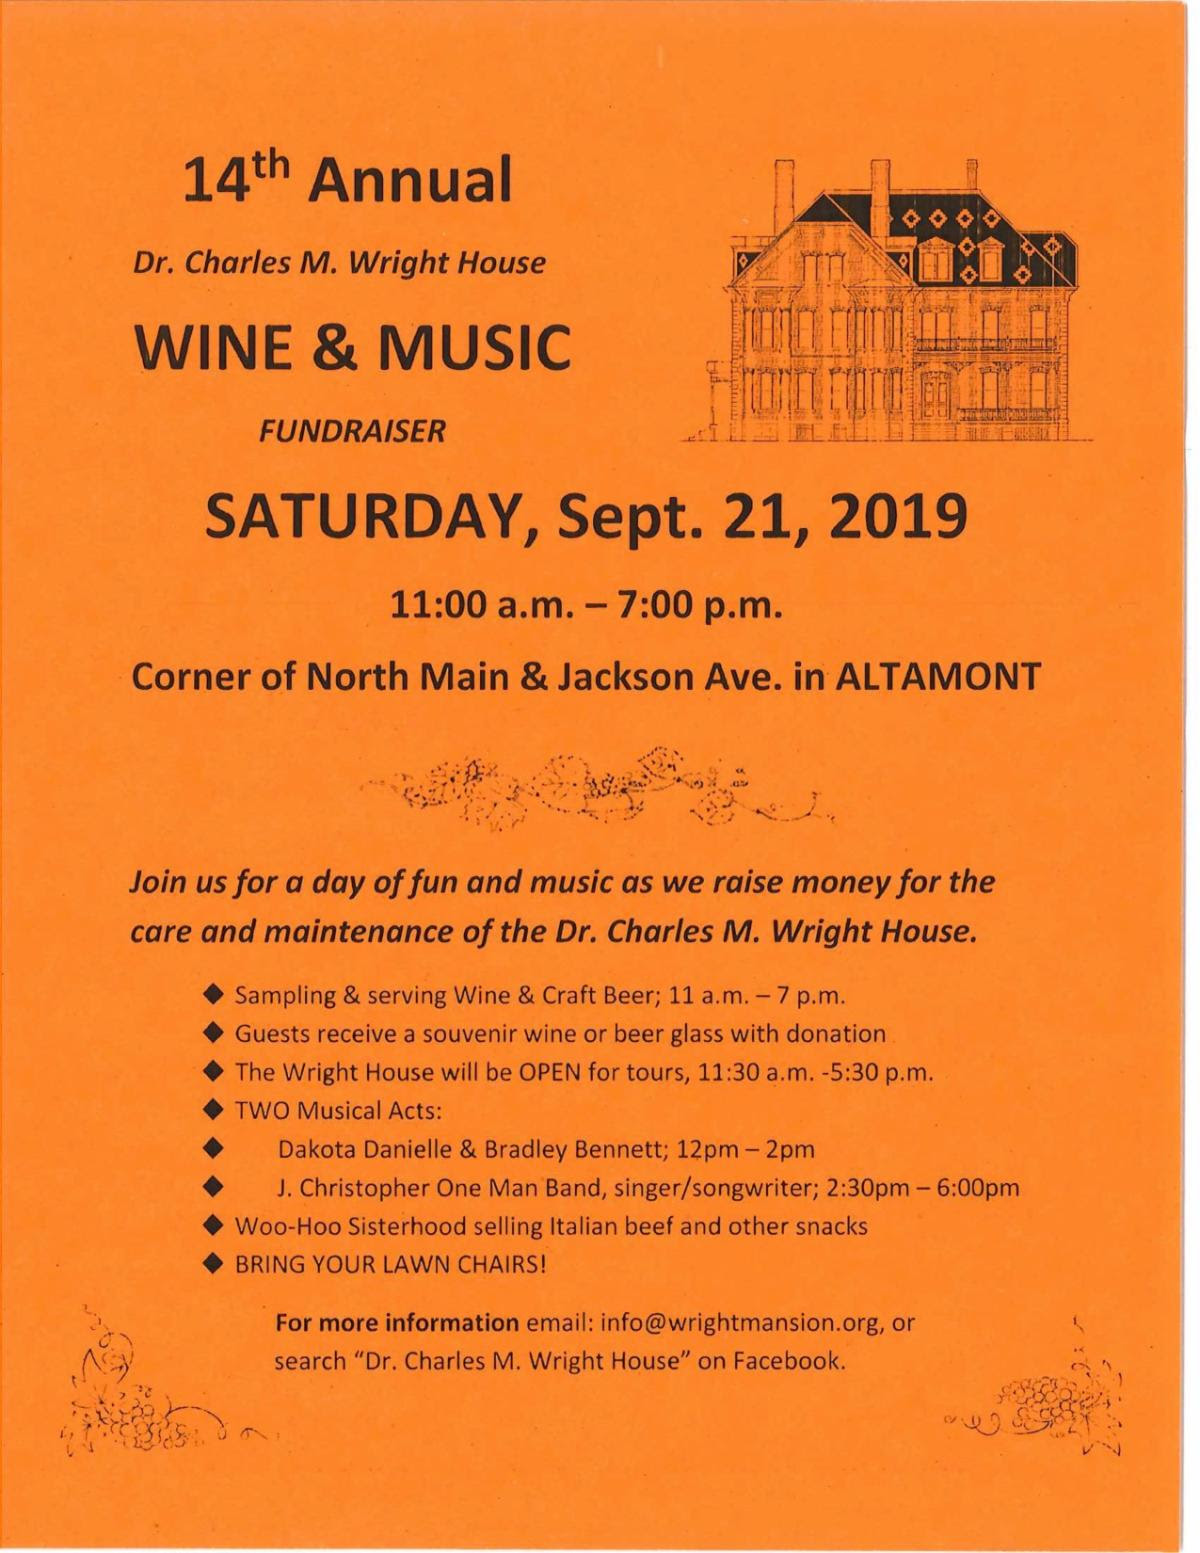 Wine and Music Fundraiser